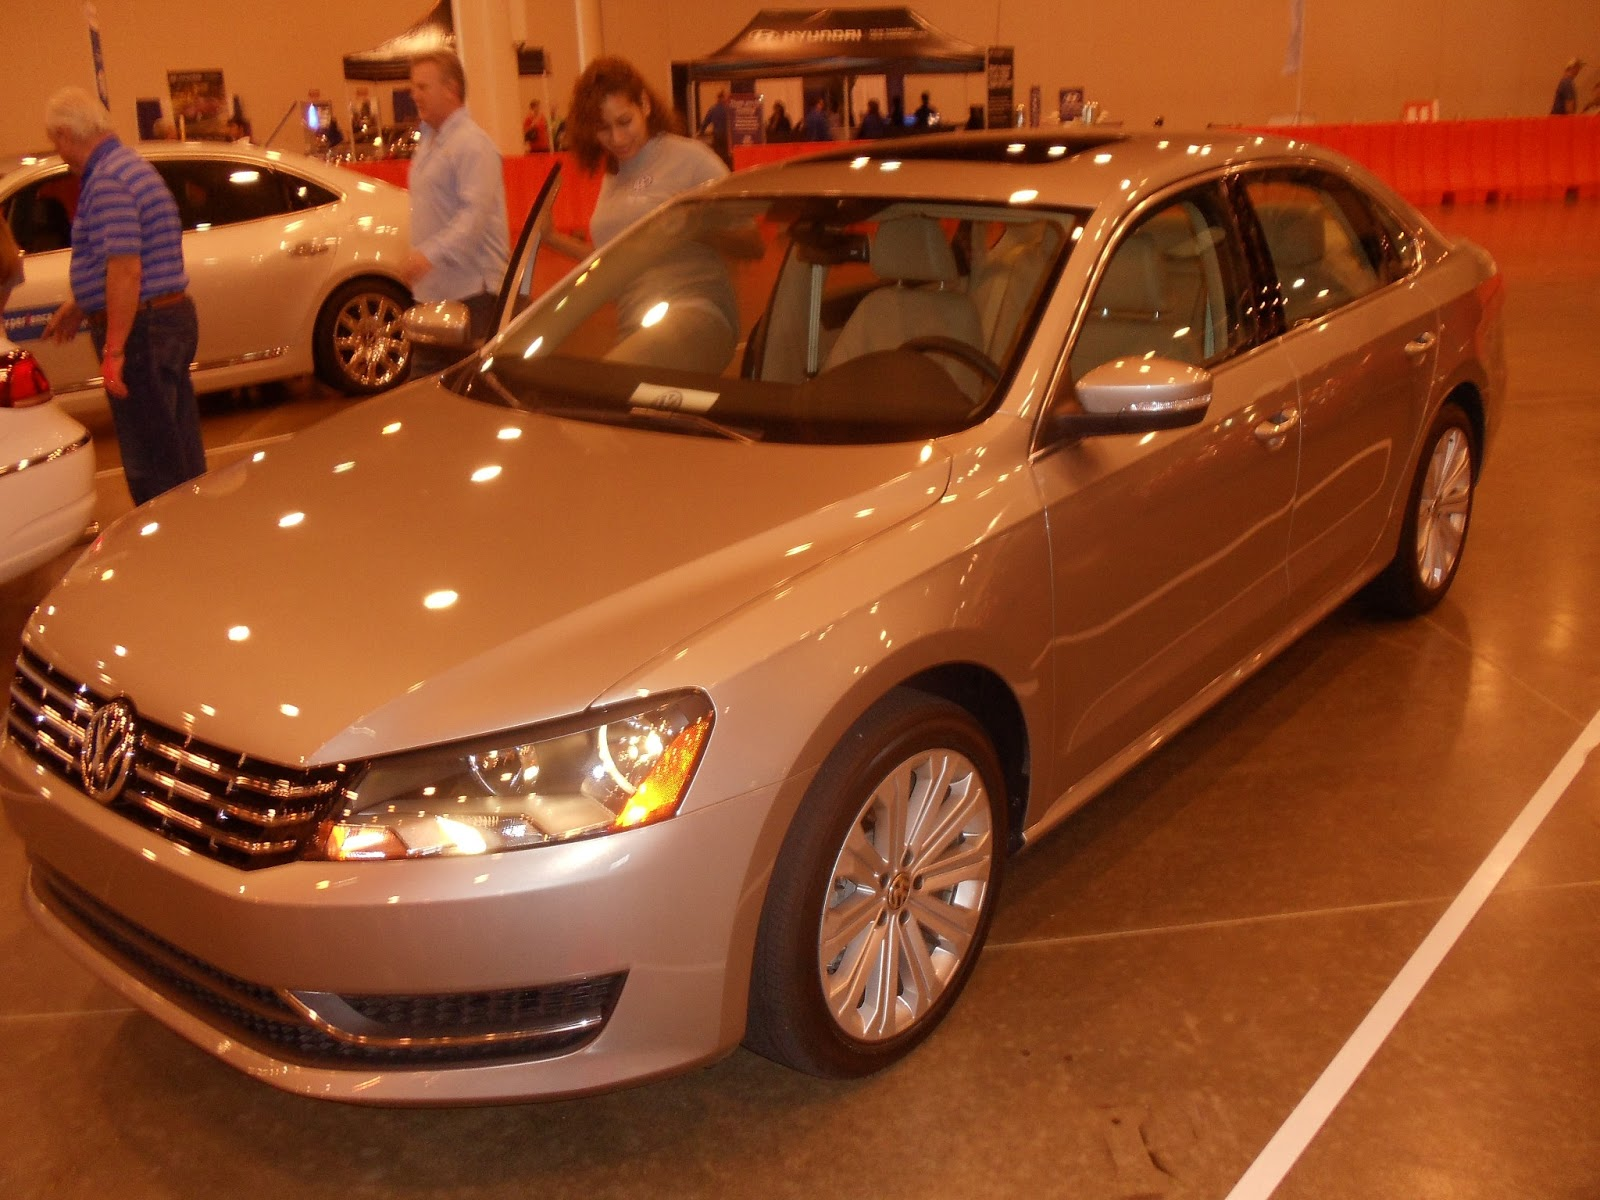 worst car ever made: First Drive: 2013 Volkswagen Passat TDI